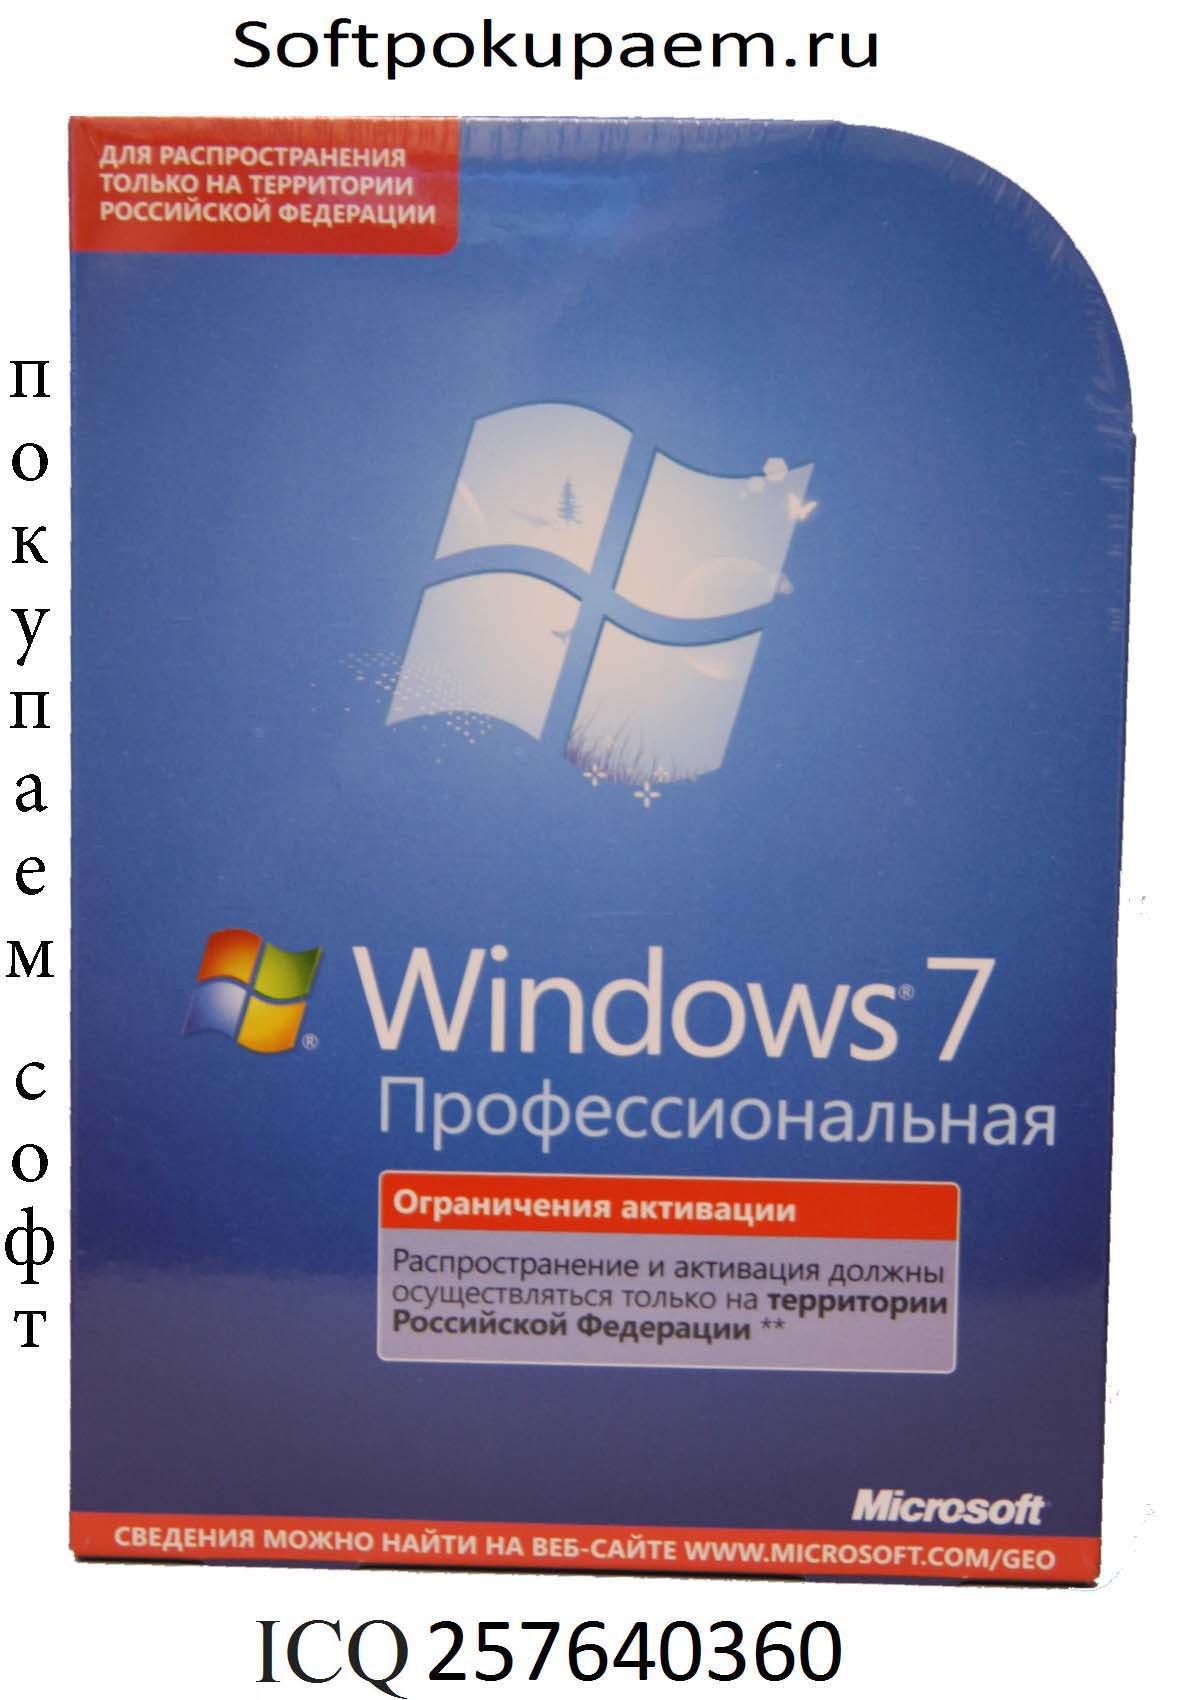 Покупаем всё от Microsoft – Office, Server, Windows